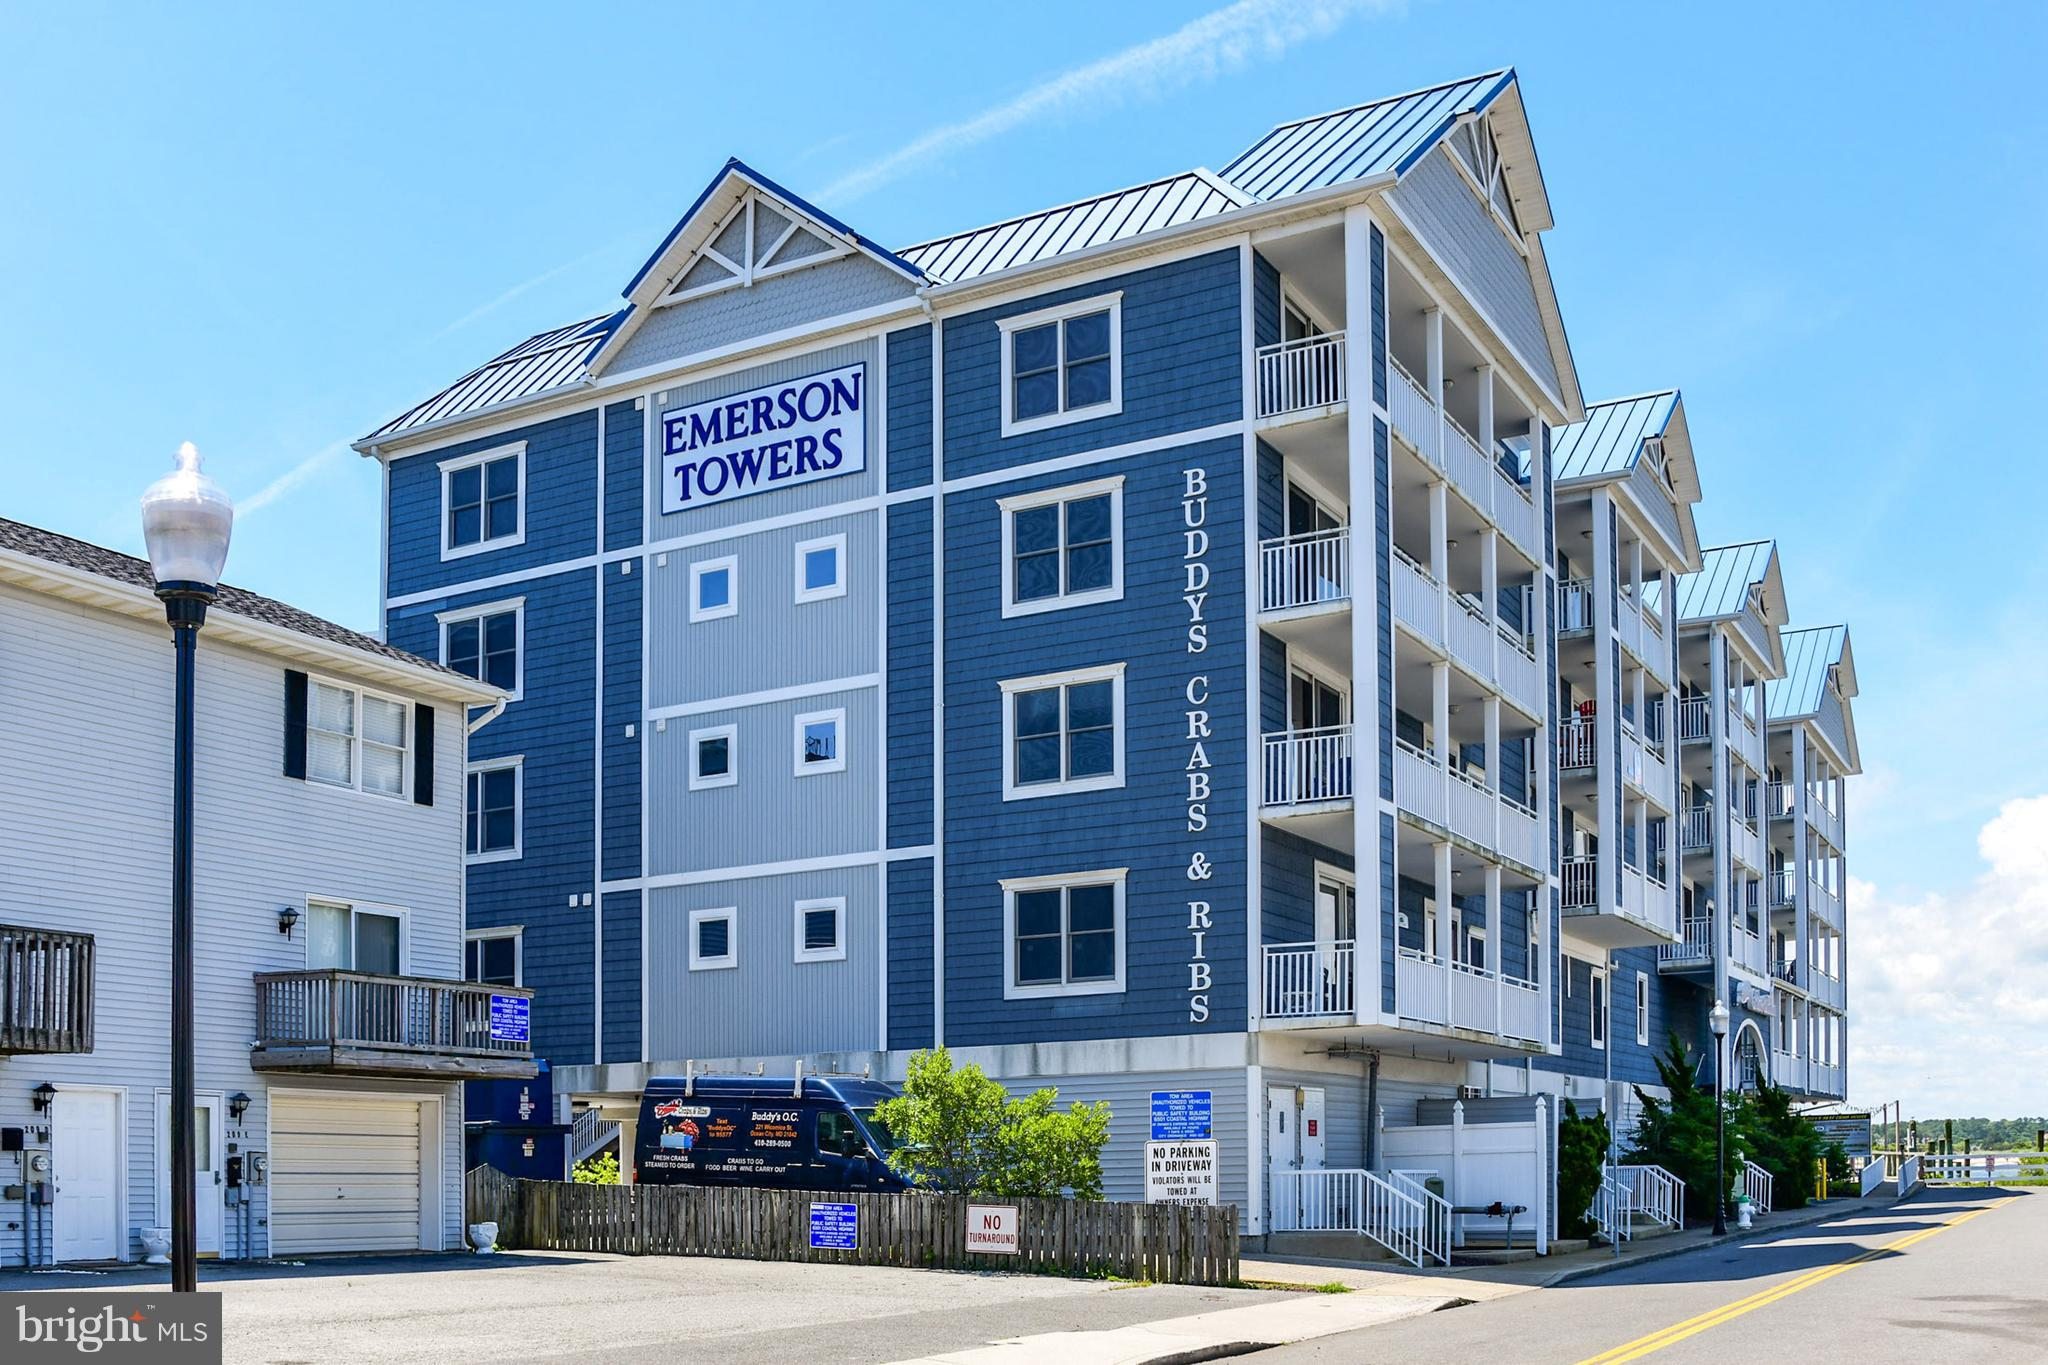 221 WICOMICO STREET 503 EMERSON TOWERS, OCEAN CITY, MD 21842